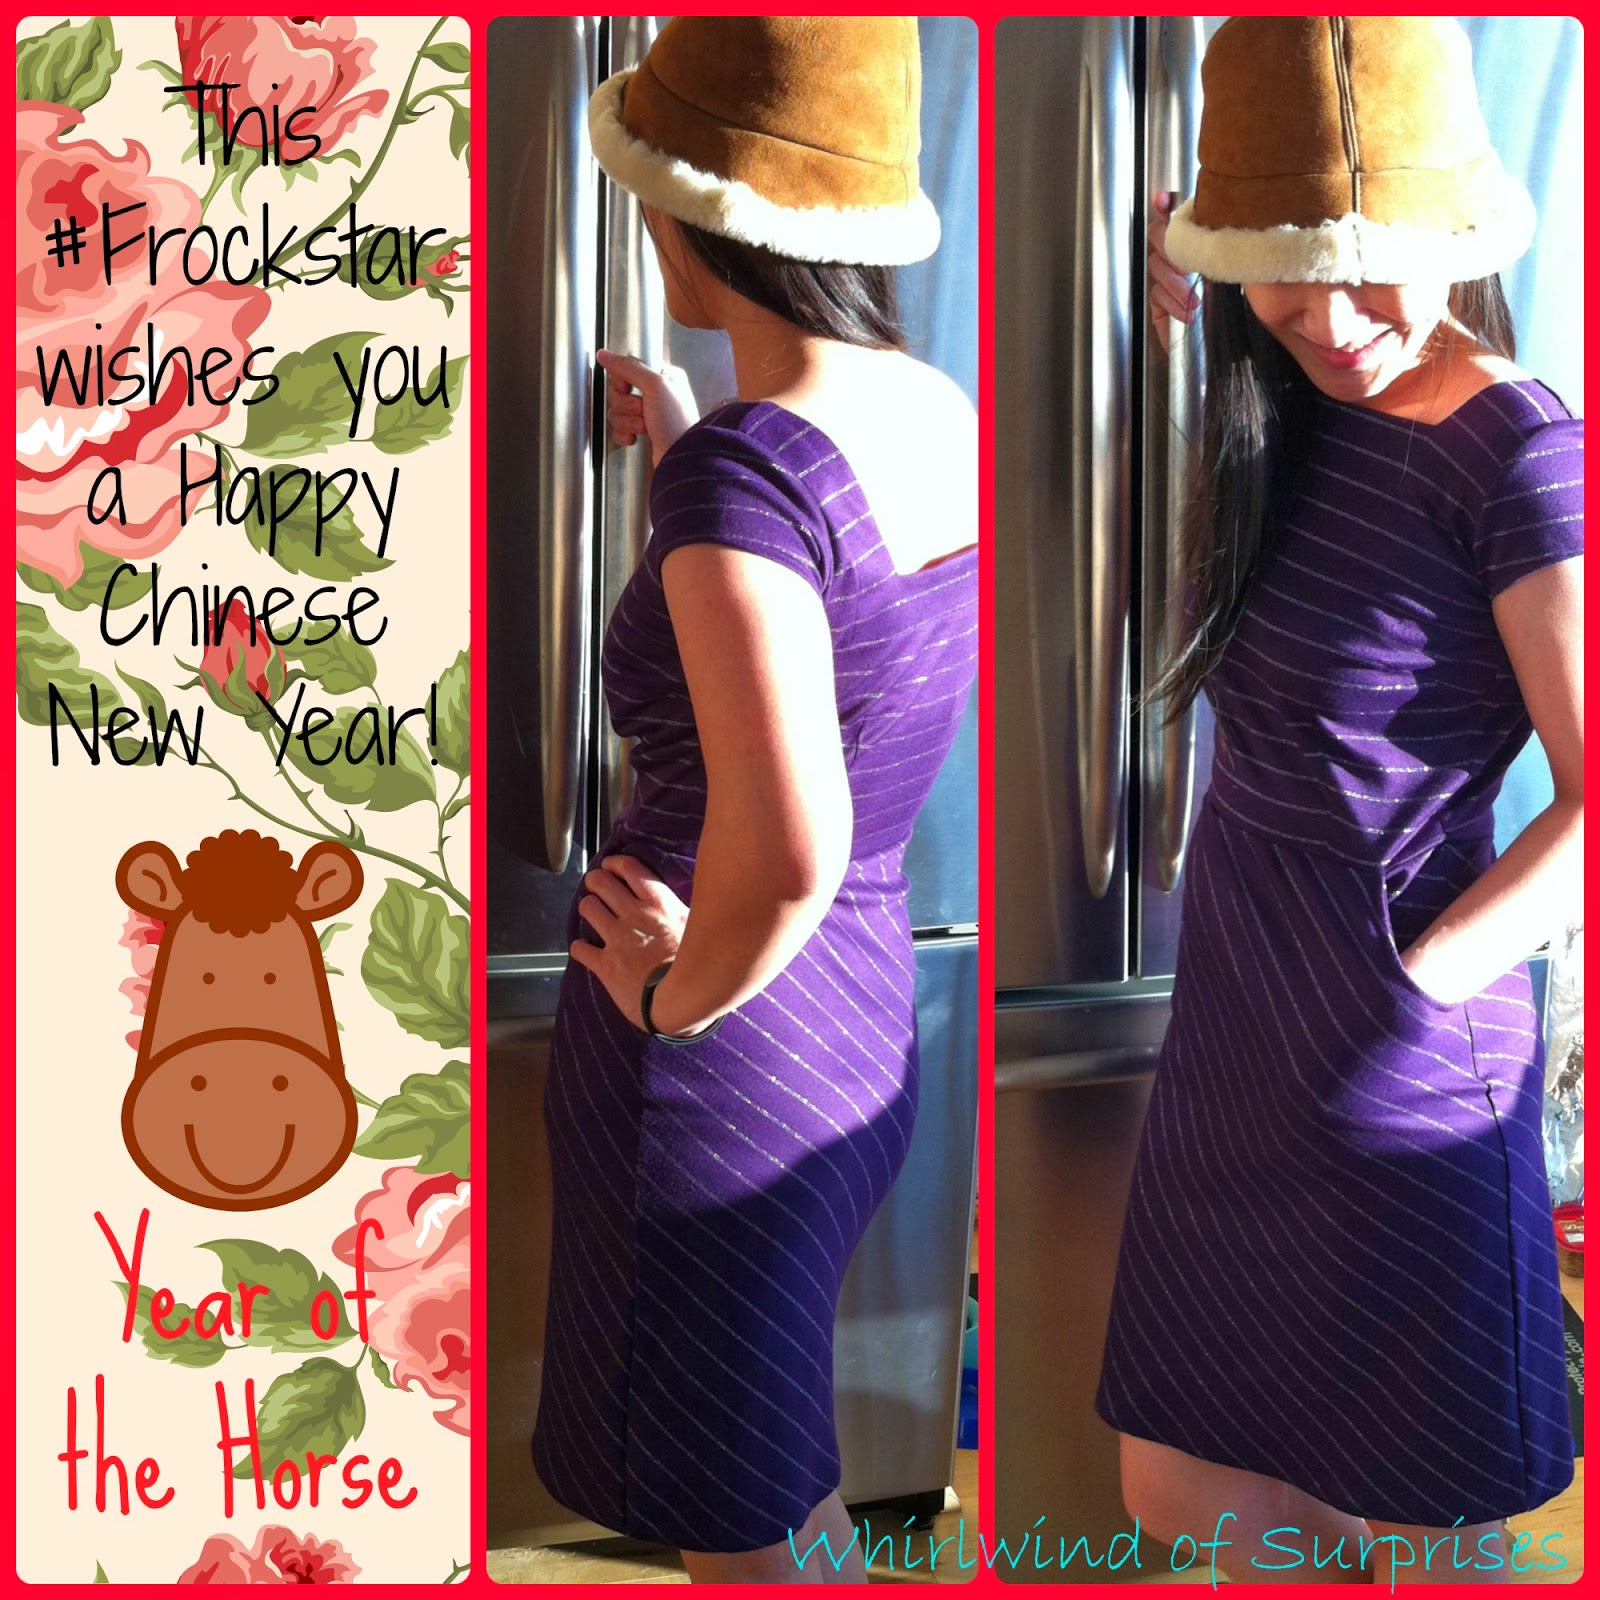 #Frockstar wishing you Happy Chinese New years, #YearoftheHorse